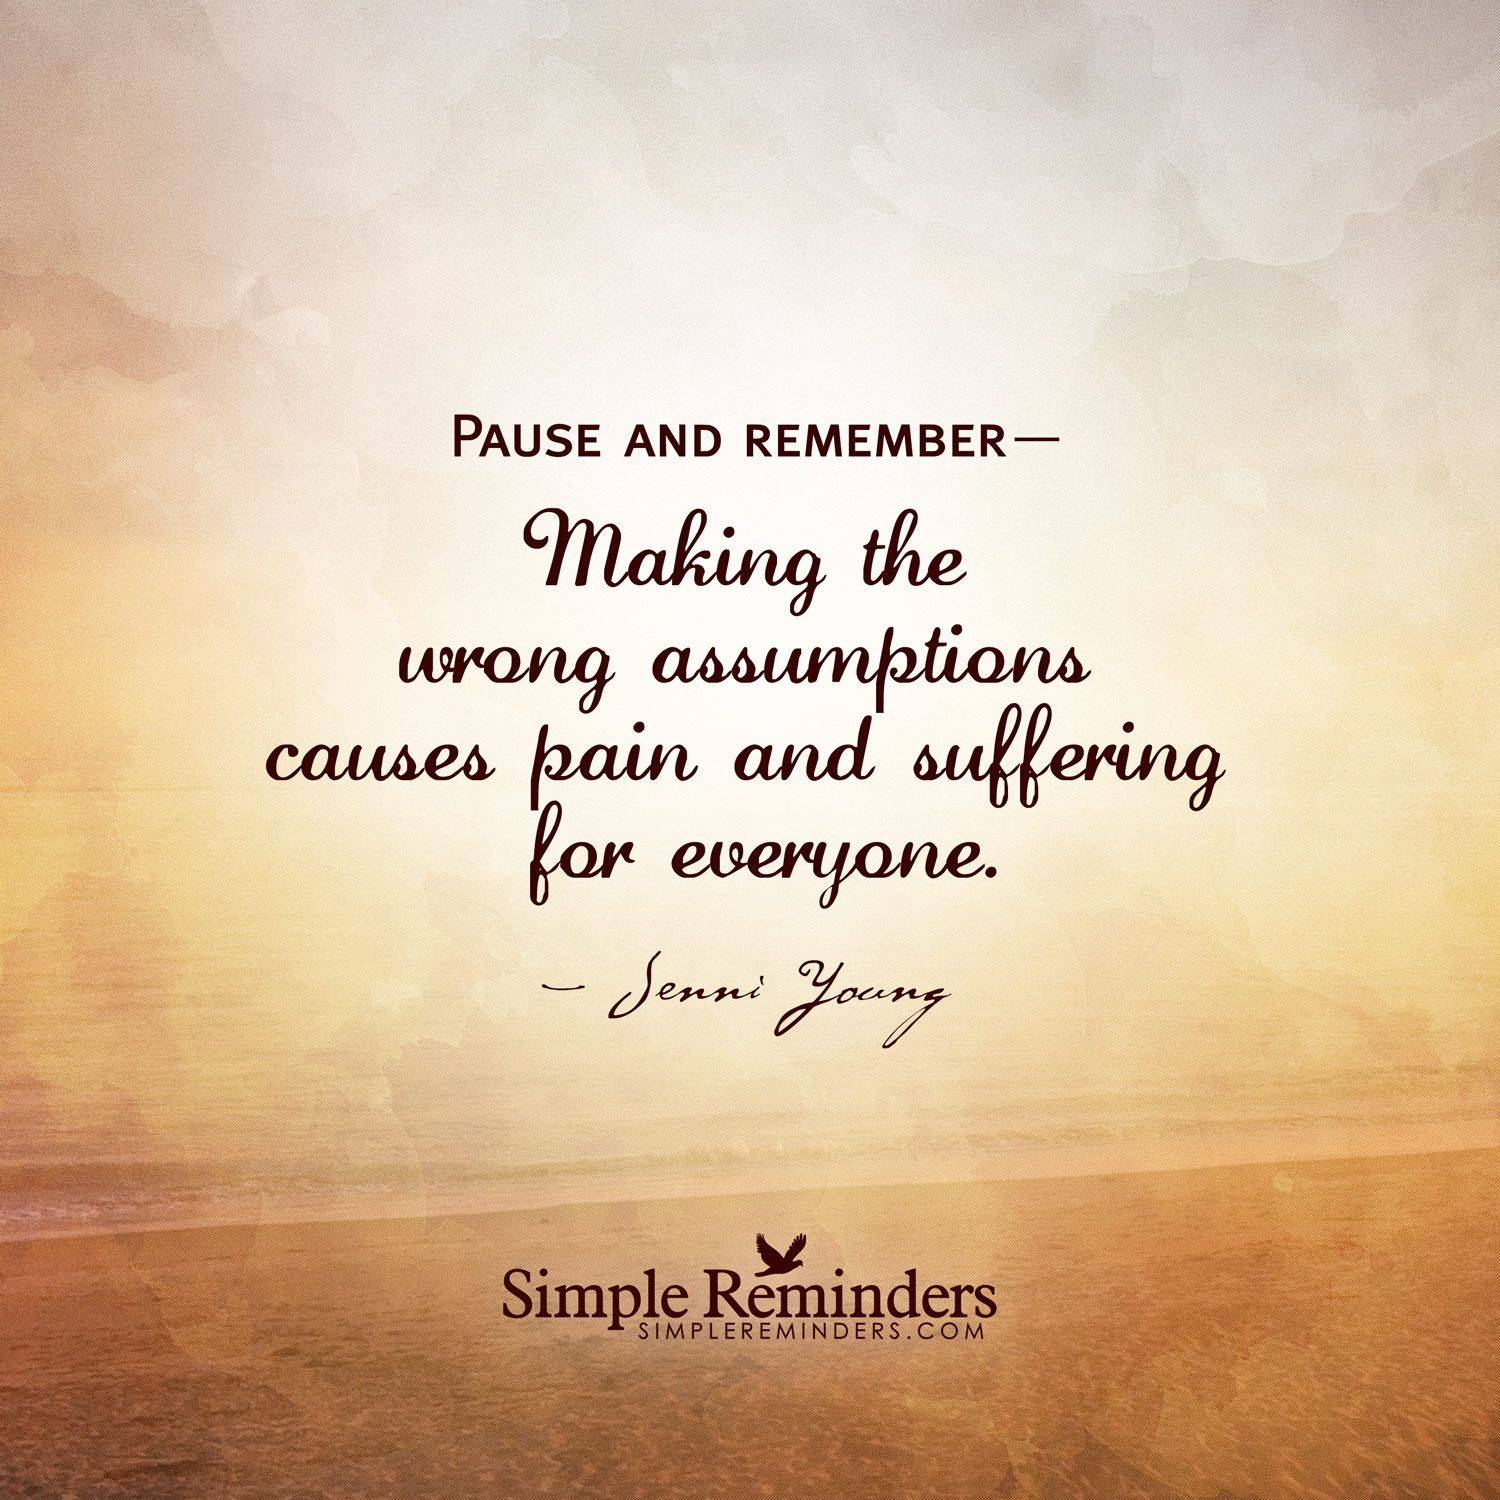 Pause and remember— Making the wrong assumptions causes pain and suffering for everyone. — Jenni Young